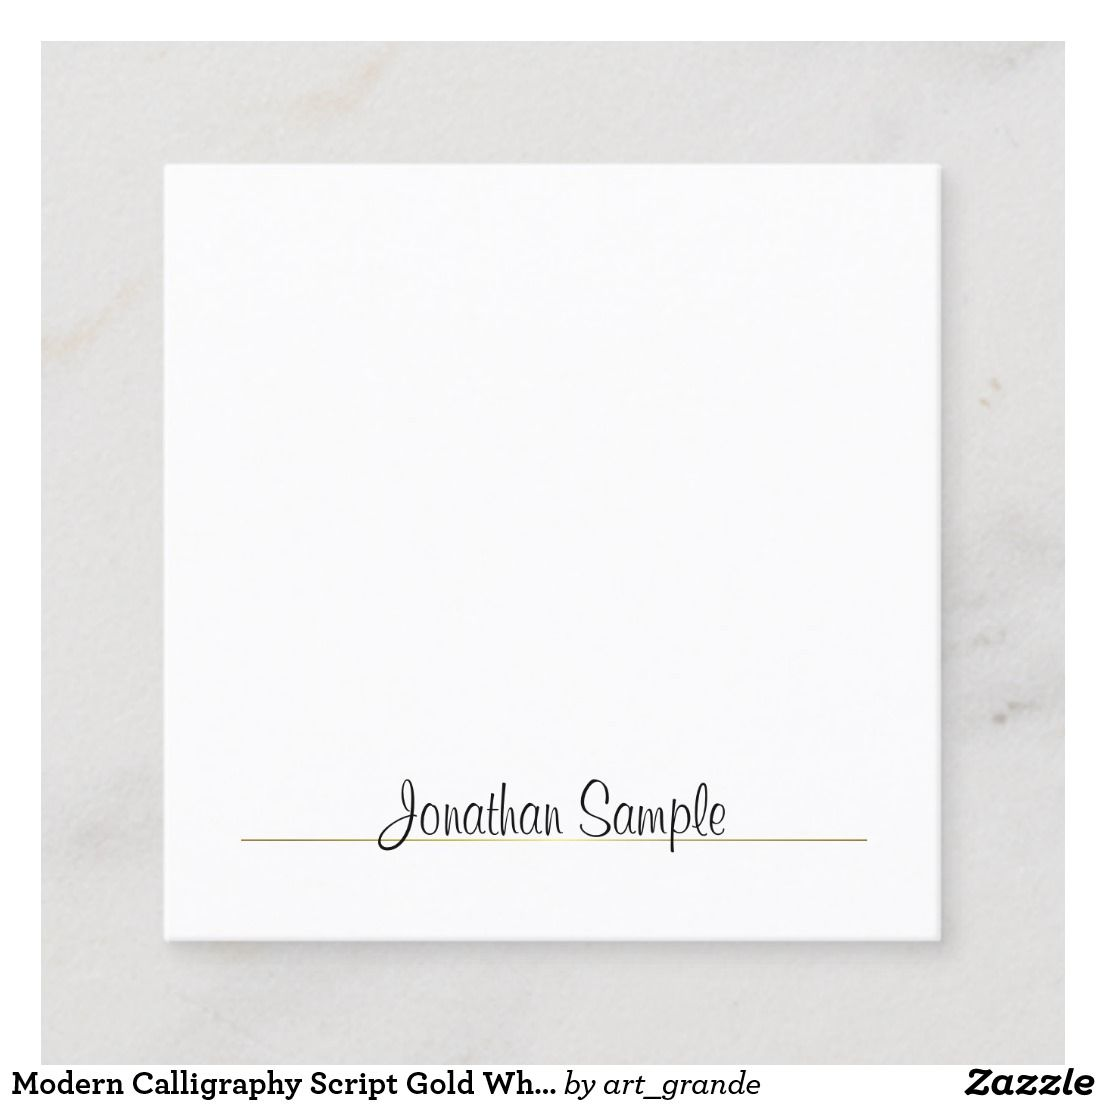 Modern Calligraphy Script Gold White Cool Template Square